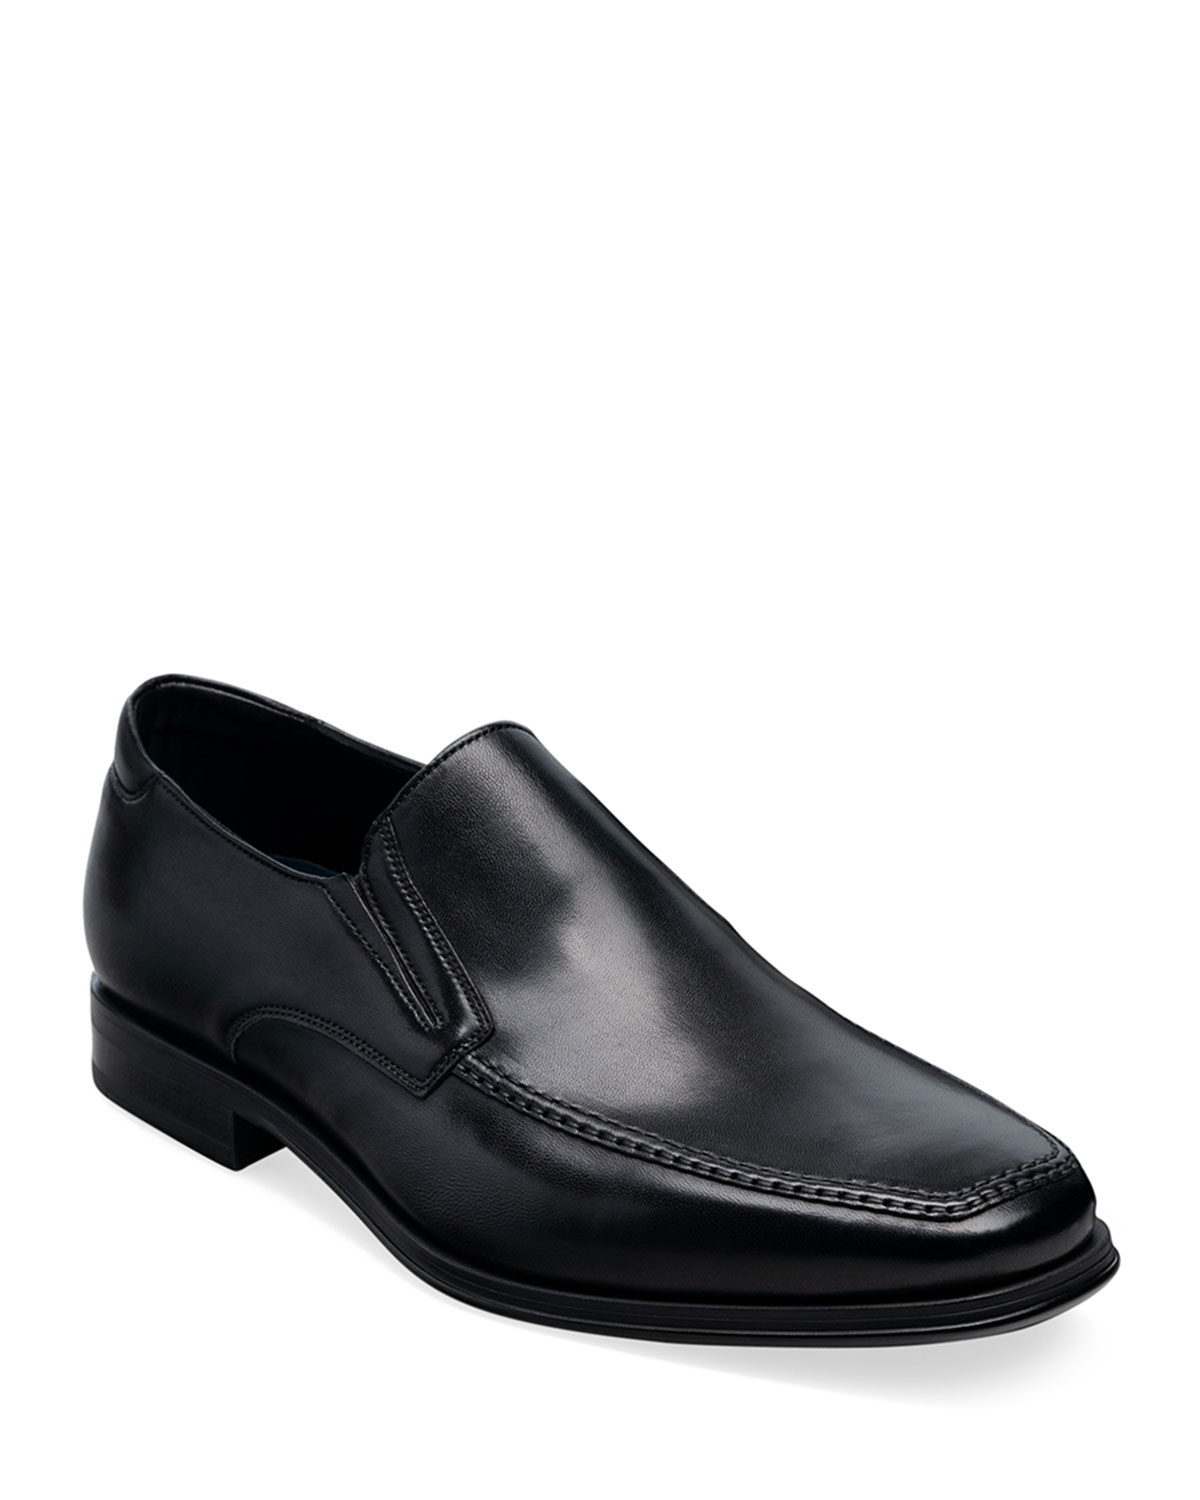 mens-madrid-slip-on-loafers by magnanni